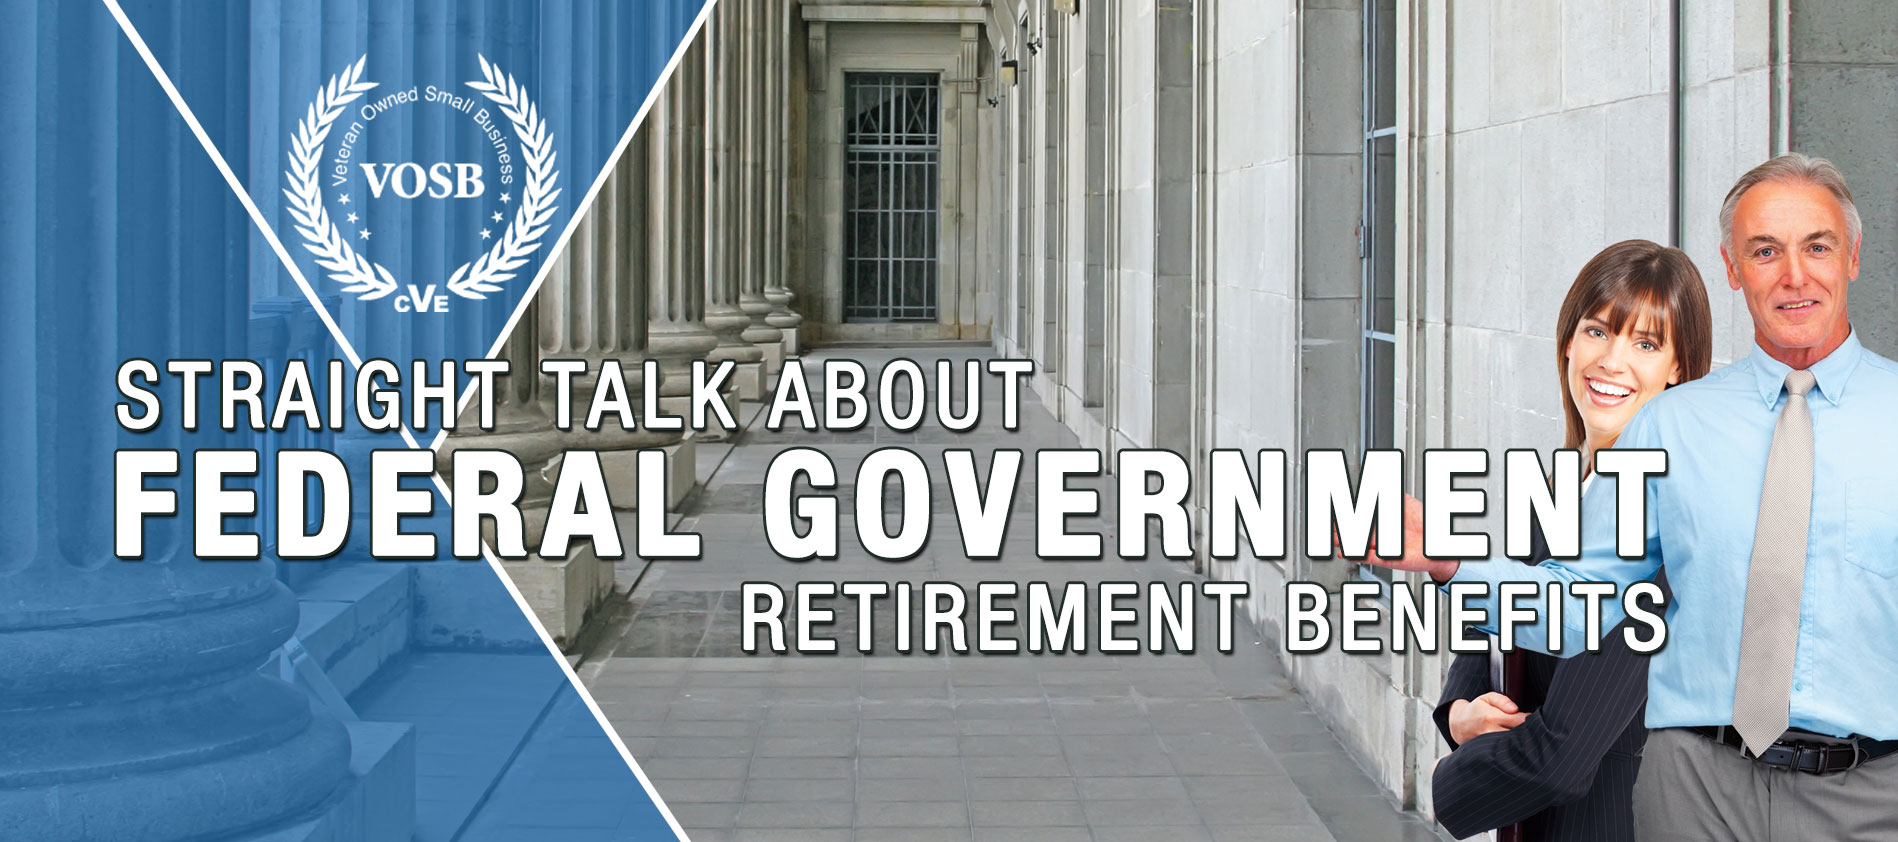 Federal Employees Retirement & Benefits